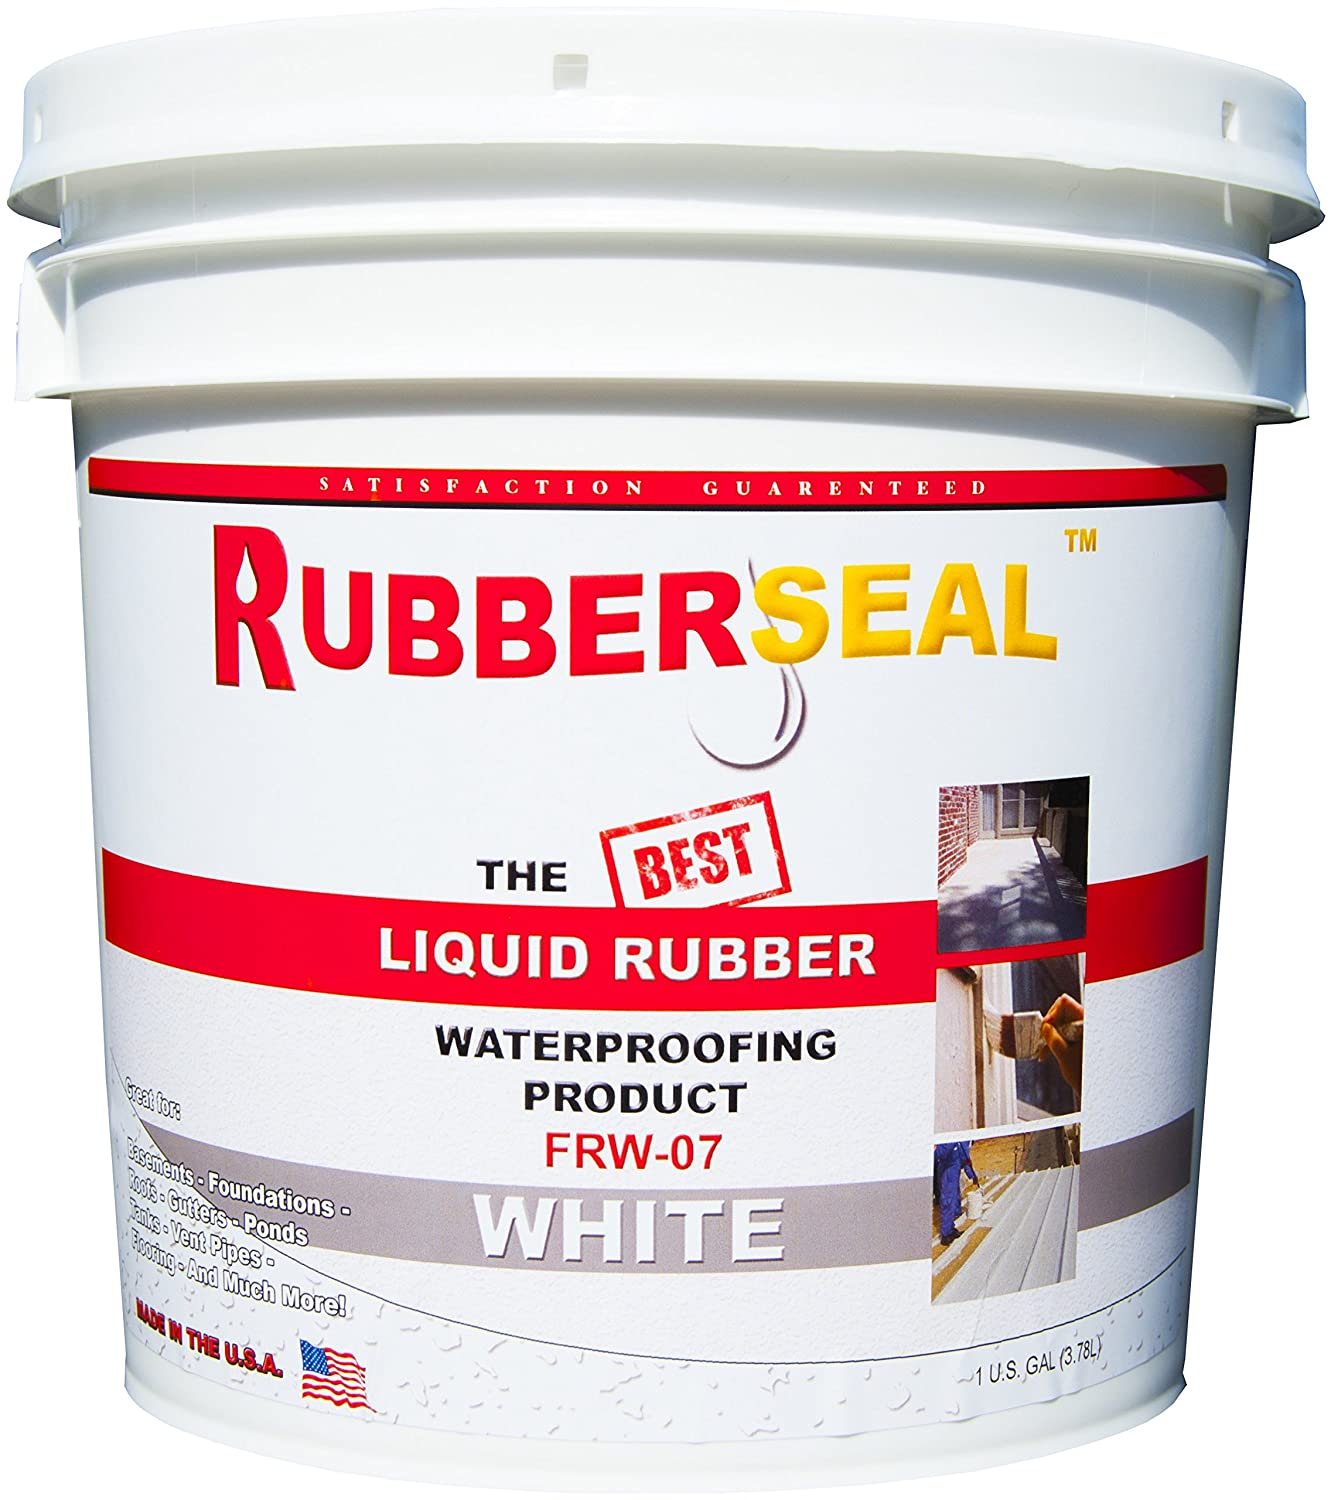 roof sealant, henry roof sealant, henry sealant, best roof sealant, roof waterproofing, roof sealant for leaks, roof waterproofing products, henry caulk, roof leak repair sealant, roofing caulk, roof flashing sealant, best roof sealant for shingles, best sealant for metal roof, best roof sealant for leaks, henry construction sealant, what is the best roof sealant, roof sealant paint, best roofing caulk, concrete roof sealant products, fibreglass roof sealant, waterproofing compound for roof, waterproof sealant, metal roof waterproofing products, roof sealant ingredients, roof coating, best roof coating, best roof paint, best silicone roof coating, best rated roof coating, roof coating reviews, best aluminum roof coating, roof paint, roll on roof sealer, roof paint reviews, roof sealers comparison, best silver roof coating, roof coating materials, elastomeric roof coating ratings, polymer roof coatings, roof paints and coatings, fiber paint for roofs, concrete roof sealer reviews, best roof sealant philippines, rubber roof sealant, elastomeric roof coating, elastomeric roof coating reviews, best elastomeric roof coating, elastomeric roof, metal roof coatings reviews, compare elastomeric roof coatings, metal roof coating, elastomeric roof paint, white elastomeric roof coating, elastic roof coating, best metal roof coating, best roof coating for metal roof, white elastomeric roof coating reviews, what is the best elastomeric roof coating, best elastomeric roof coating for flat roof, metal roof paint reviews, elastic america paint, cool roof paint reviews, best roof coating for flat roof, elastomeric roof sealant, white elastomeric coating, flat roof coatings elastomeric, flat roof coating reviews, reflective roof coating, best heat reflective roof coating, what is elastomeric roof coating, best roof repair caulk, roof caulking reviews, roofing caulk for flashing, best caulk for roof flashing, polyether sealant, epdm caulk sealant, best caulk for metal roof, epdm compatible sealants, urethane caulk